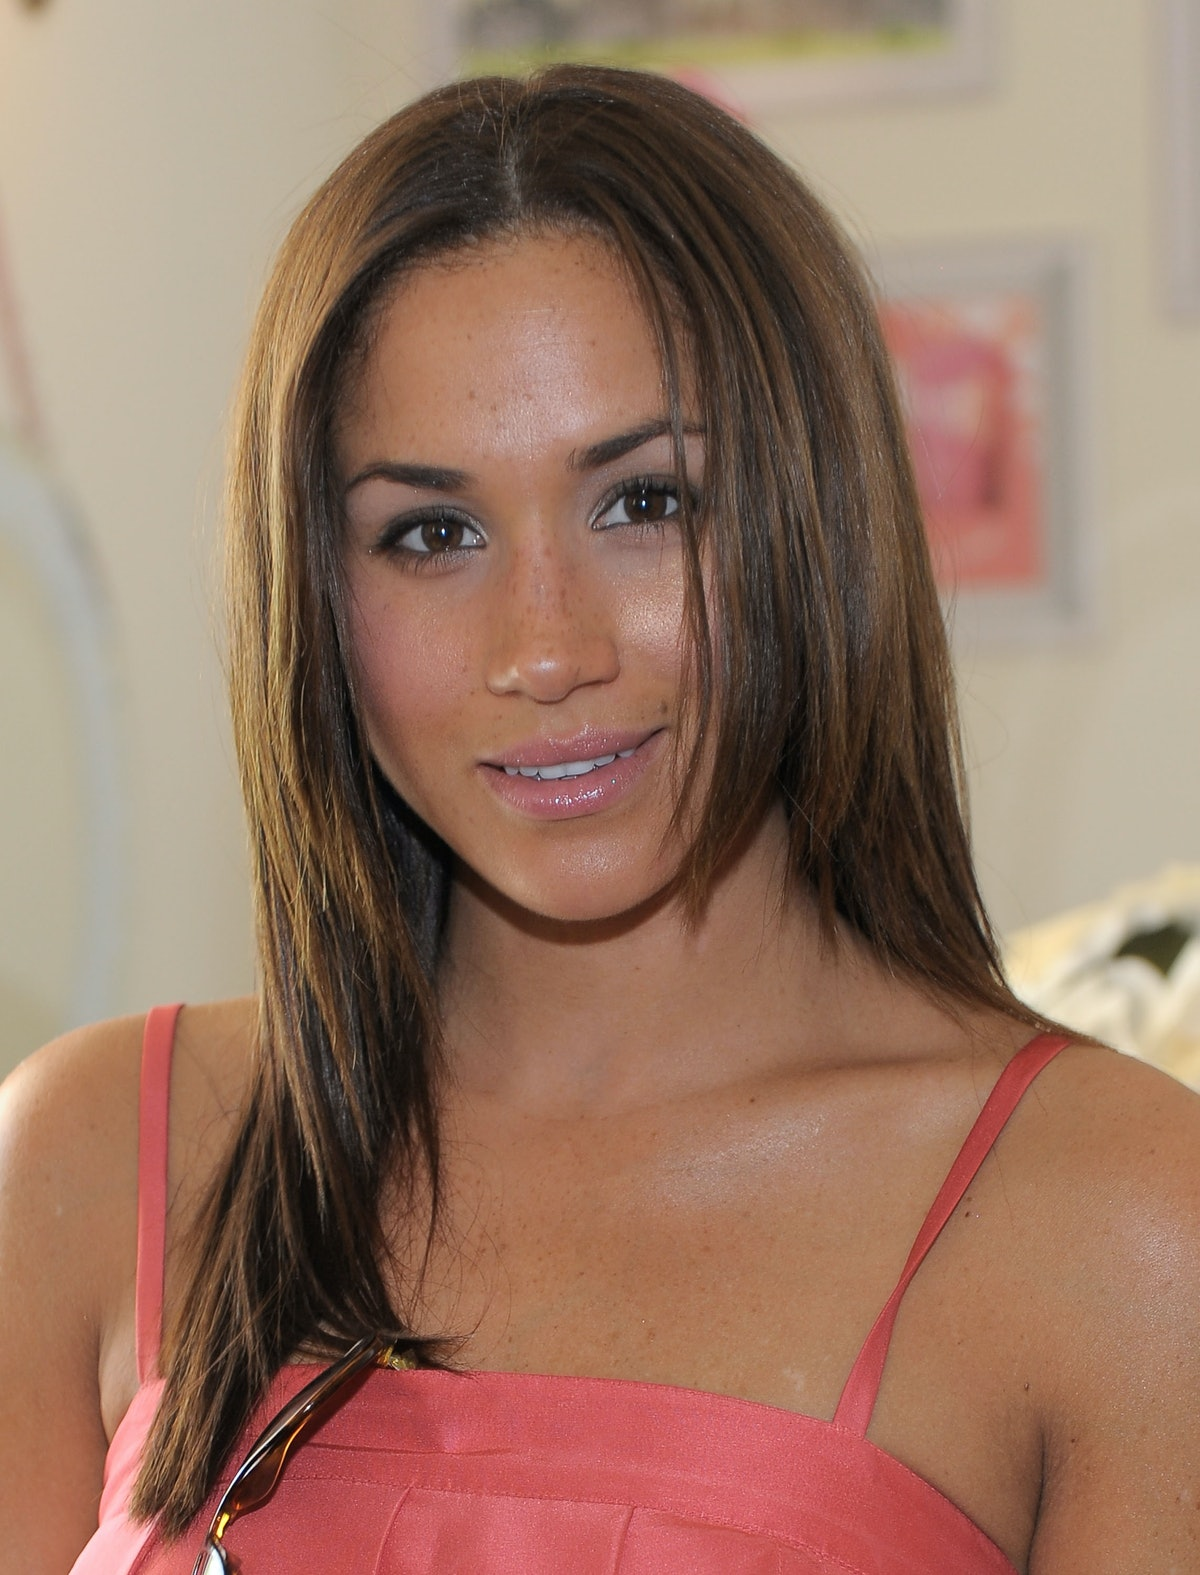 Markle, shown here up-close with a small smile and light brown hair, was still earning small roles i...